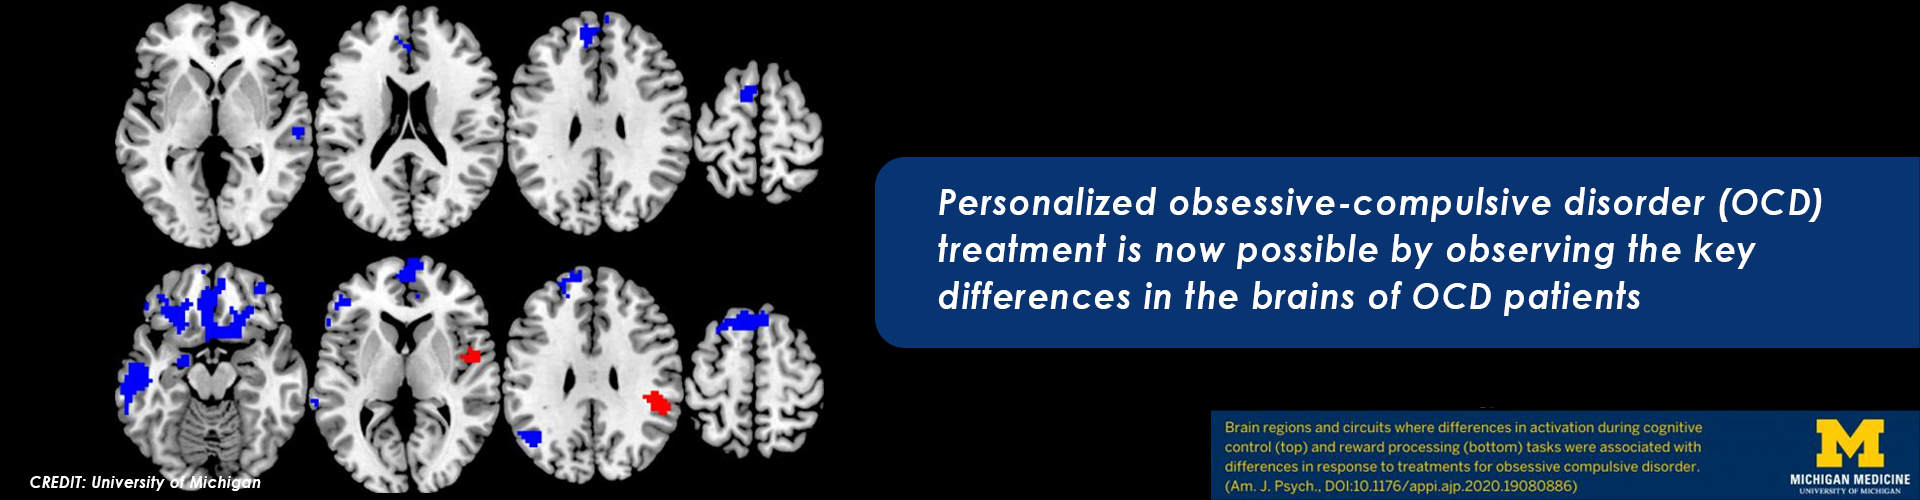 New Brain Study for Personalized OCD Treatment